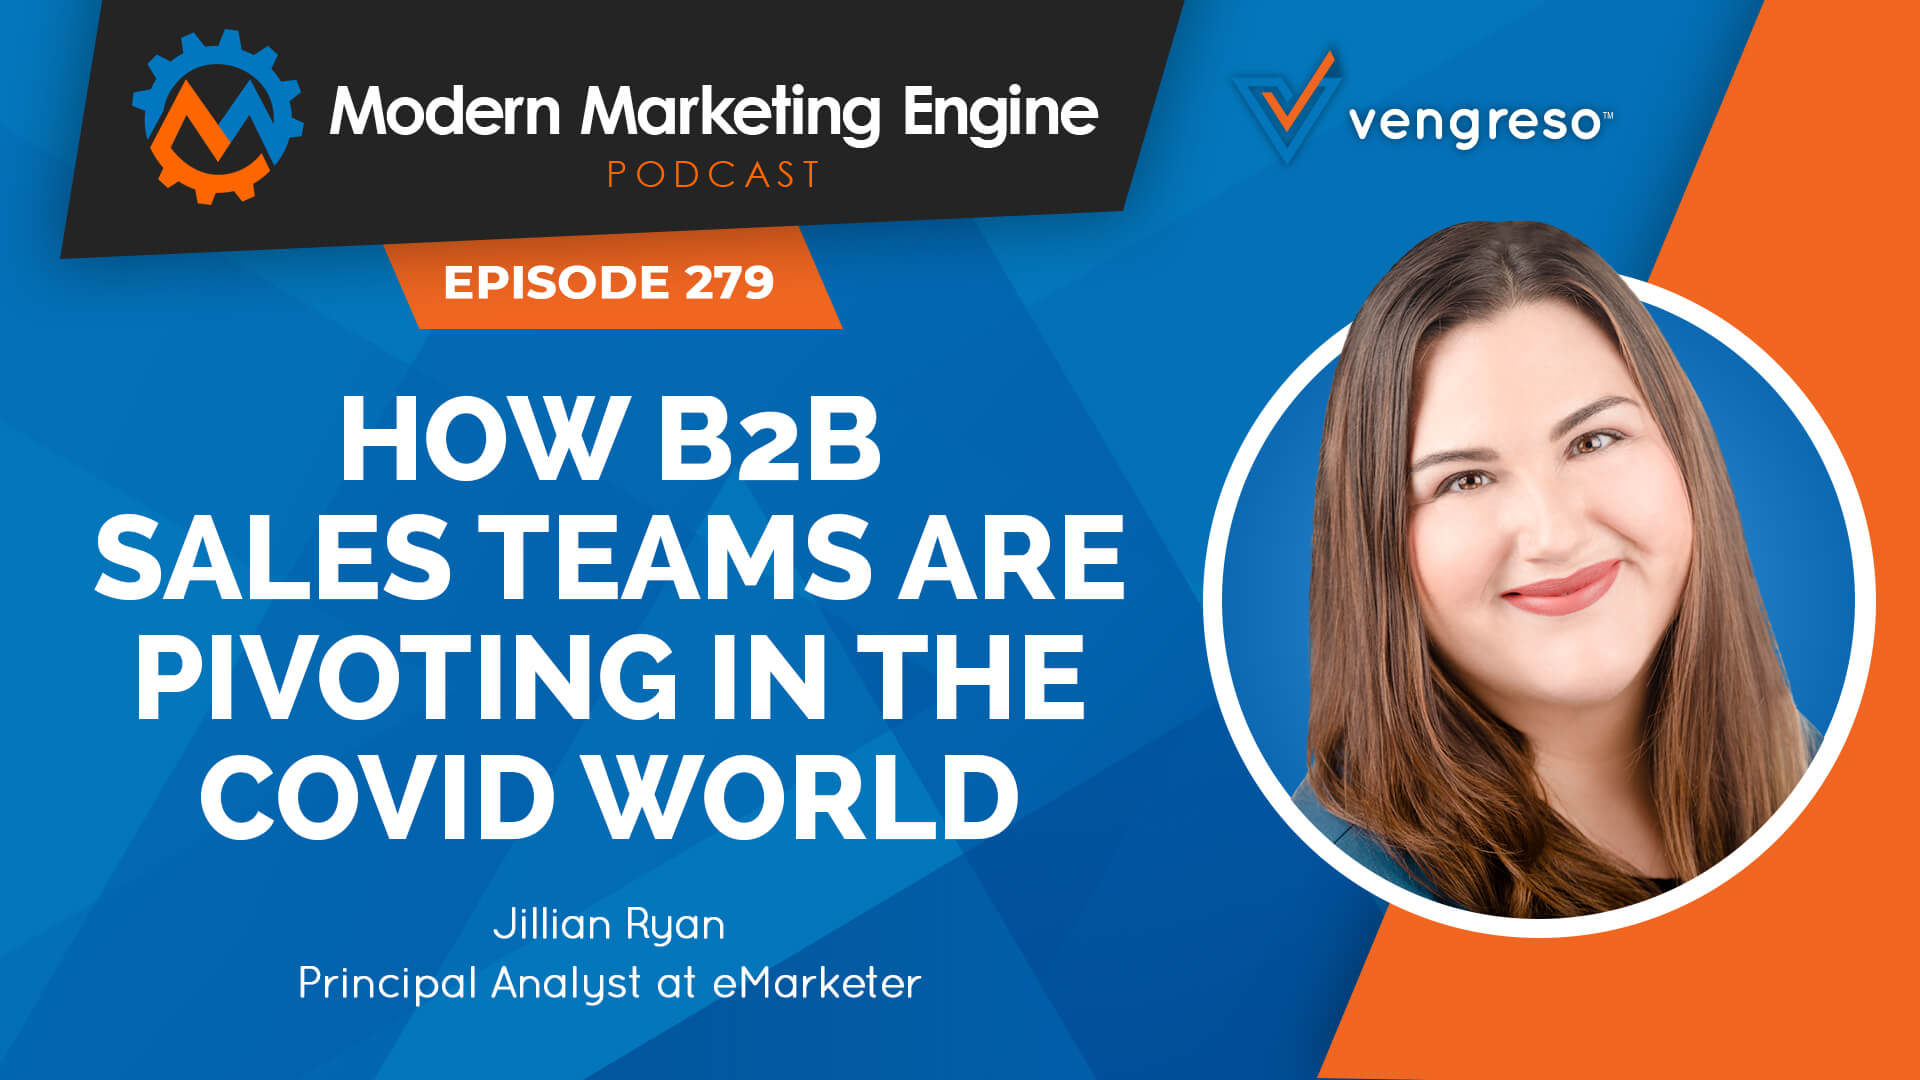 How B2B Sales Teams are Pivoting in the COVID World